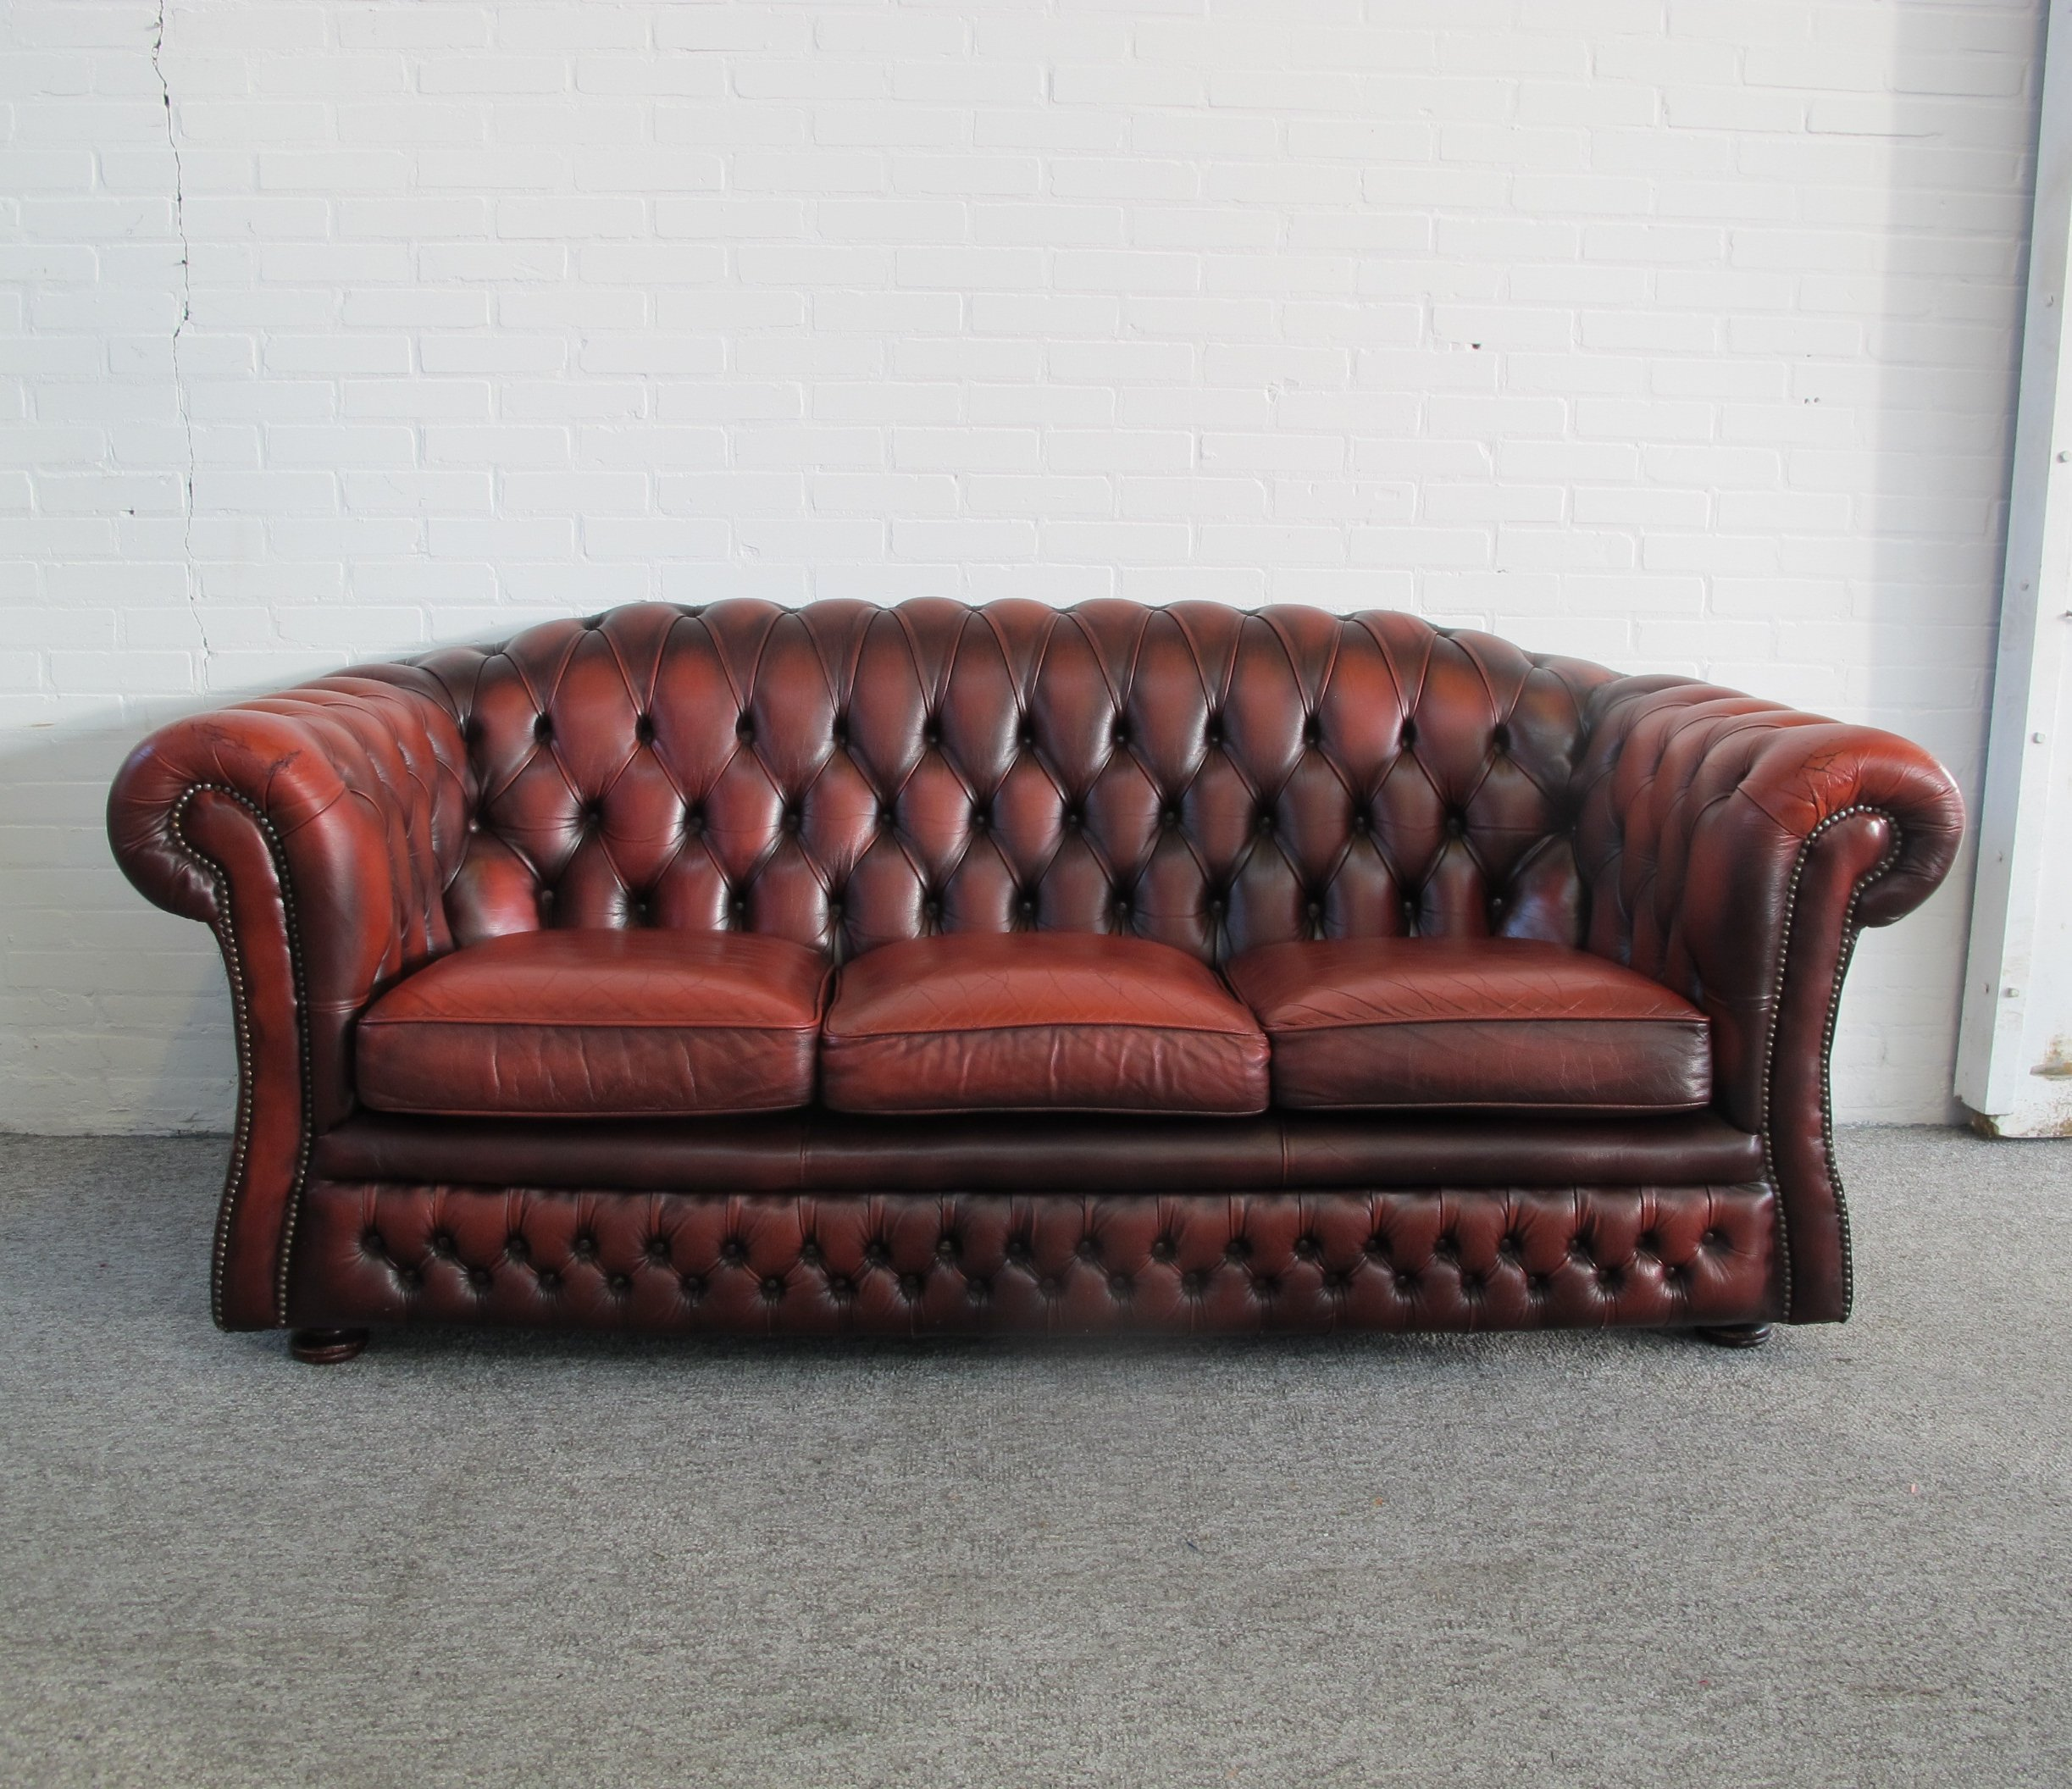 Astonishing Original English Chesterfield Sofa In Oxblood Red Leather Cjindustries Chair Design For Home Cjindustriesco